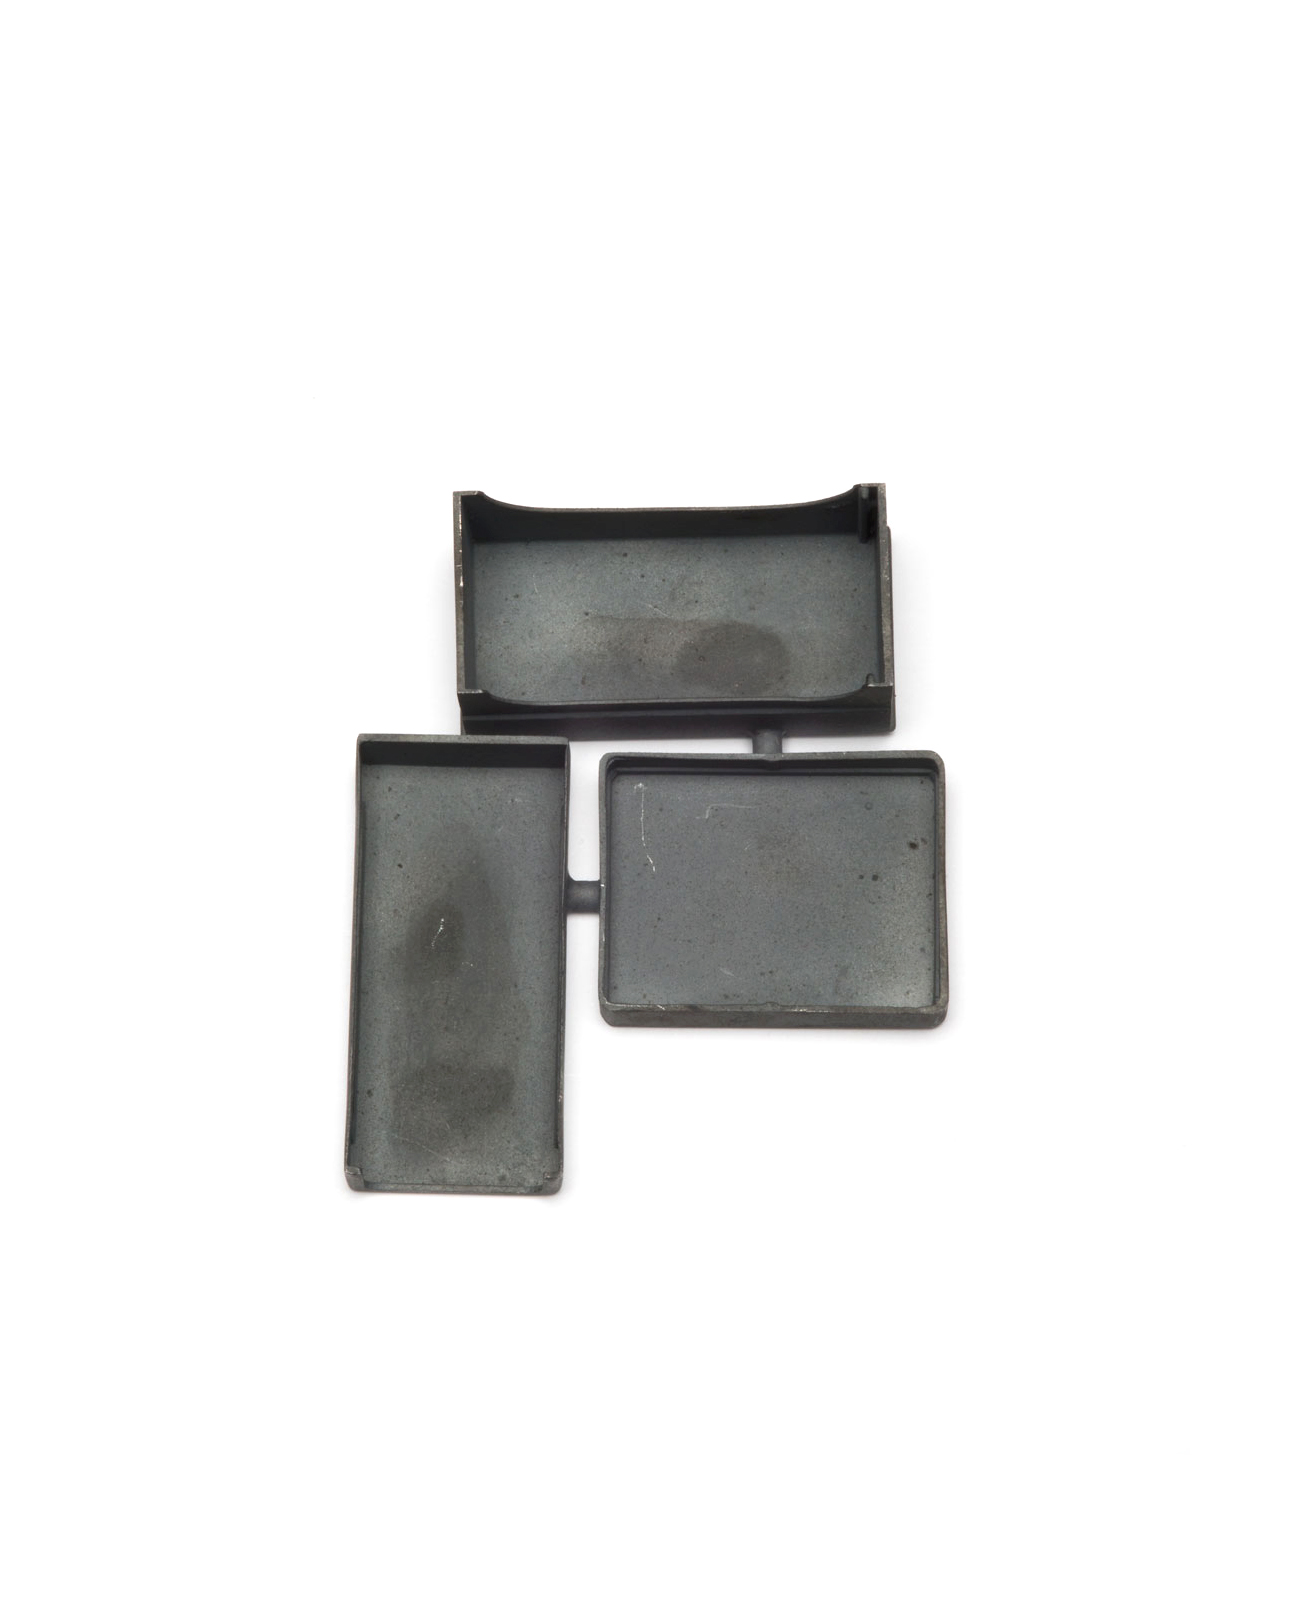 Winfried Krüger, untitled, 2008, brooch; oxidised silver, 80 x 75 mm, €2180